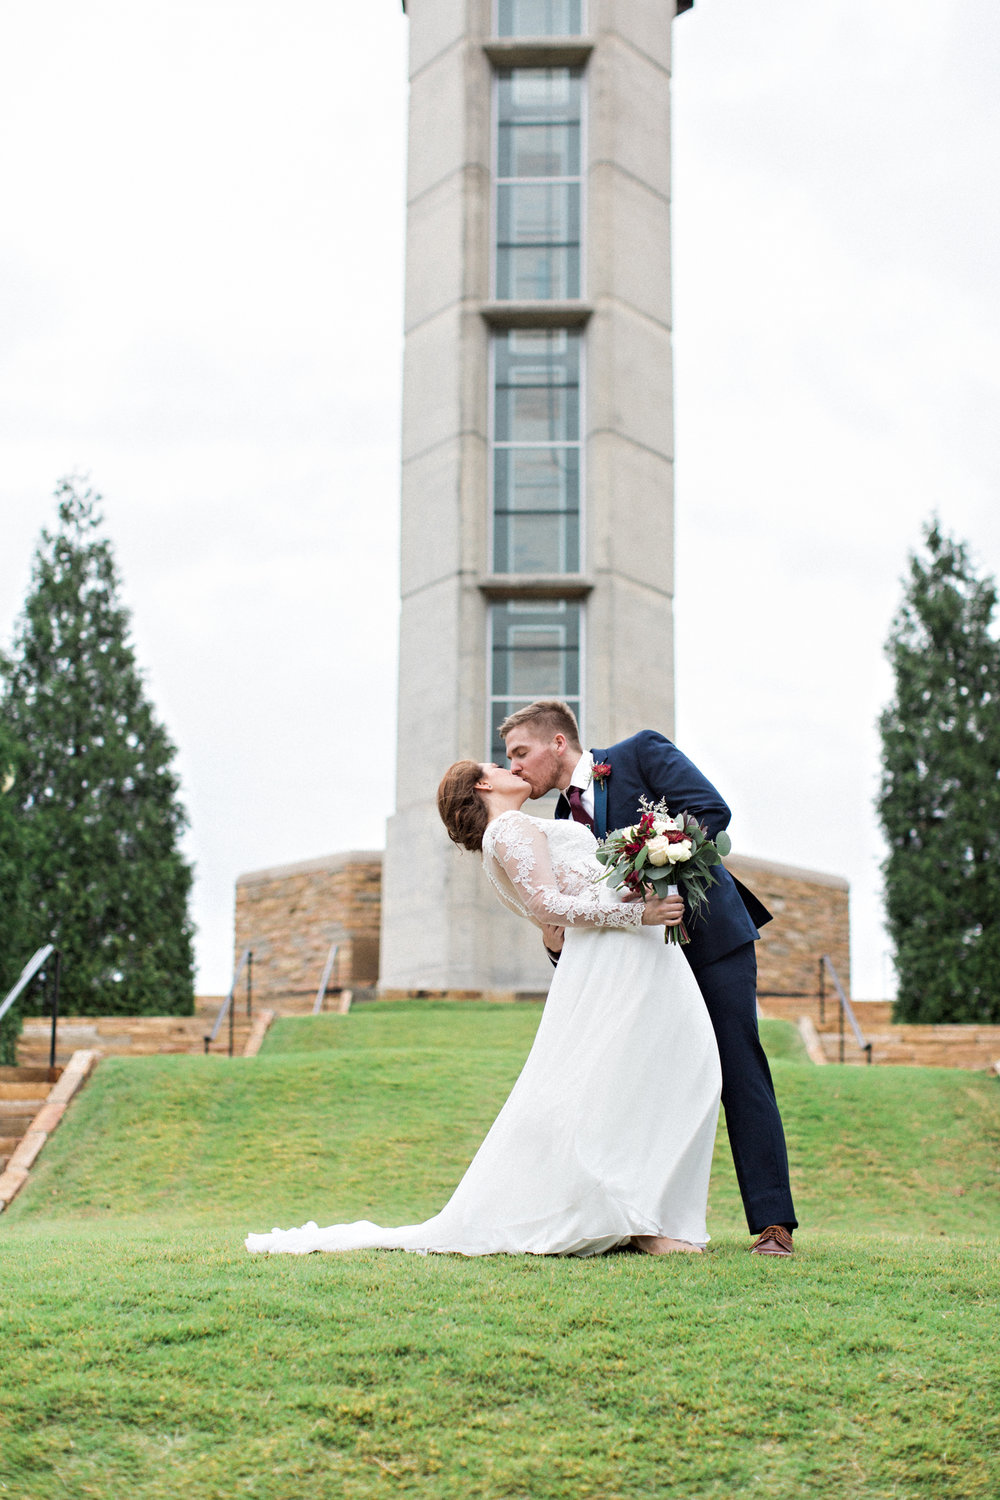 Birmingham-Wedding-Photography-Alabama-Nick-Drollette-Shelby-Logan-120.jpg